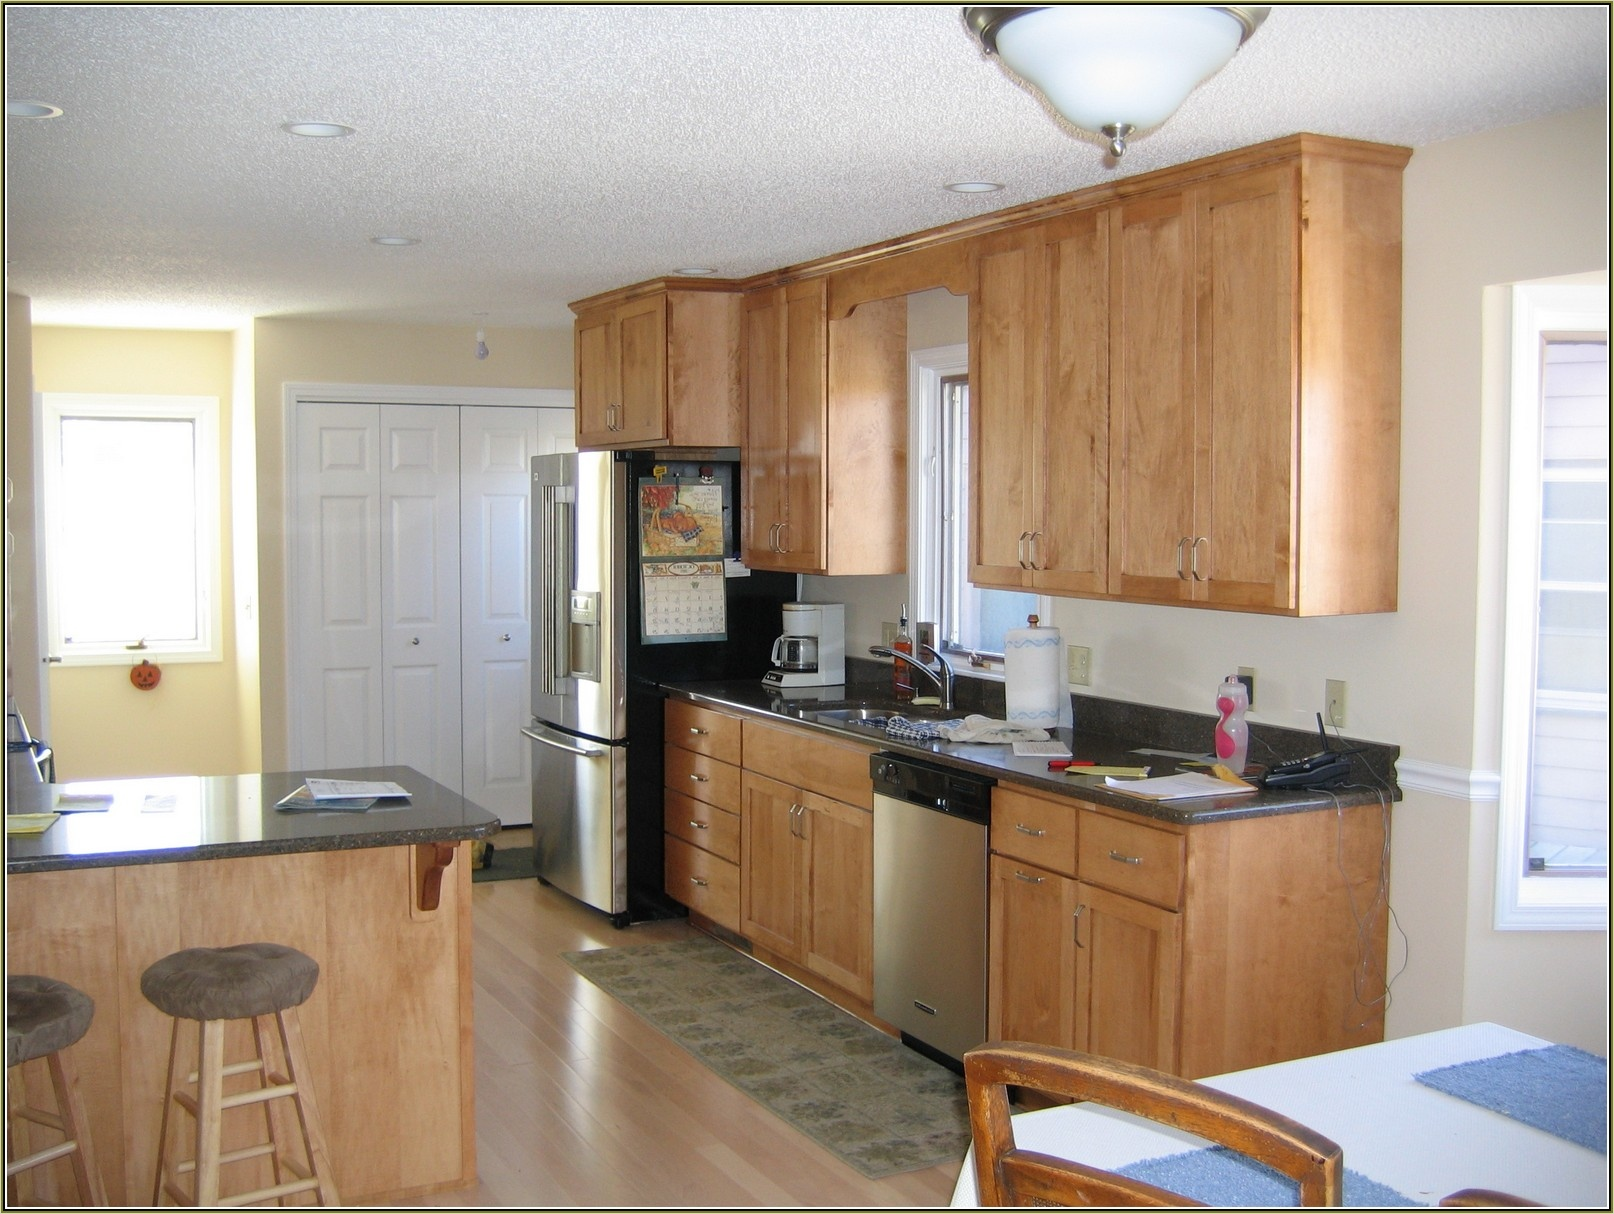 Kitchen with Maple Cabinets Color Ideas 27 Kitchen Lake forest Park Residence 109 Kitchen Color Ideas with Maple Cabinets Ahhualongganggou 9